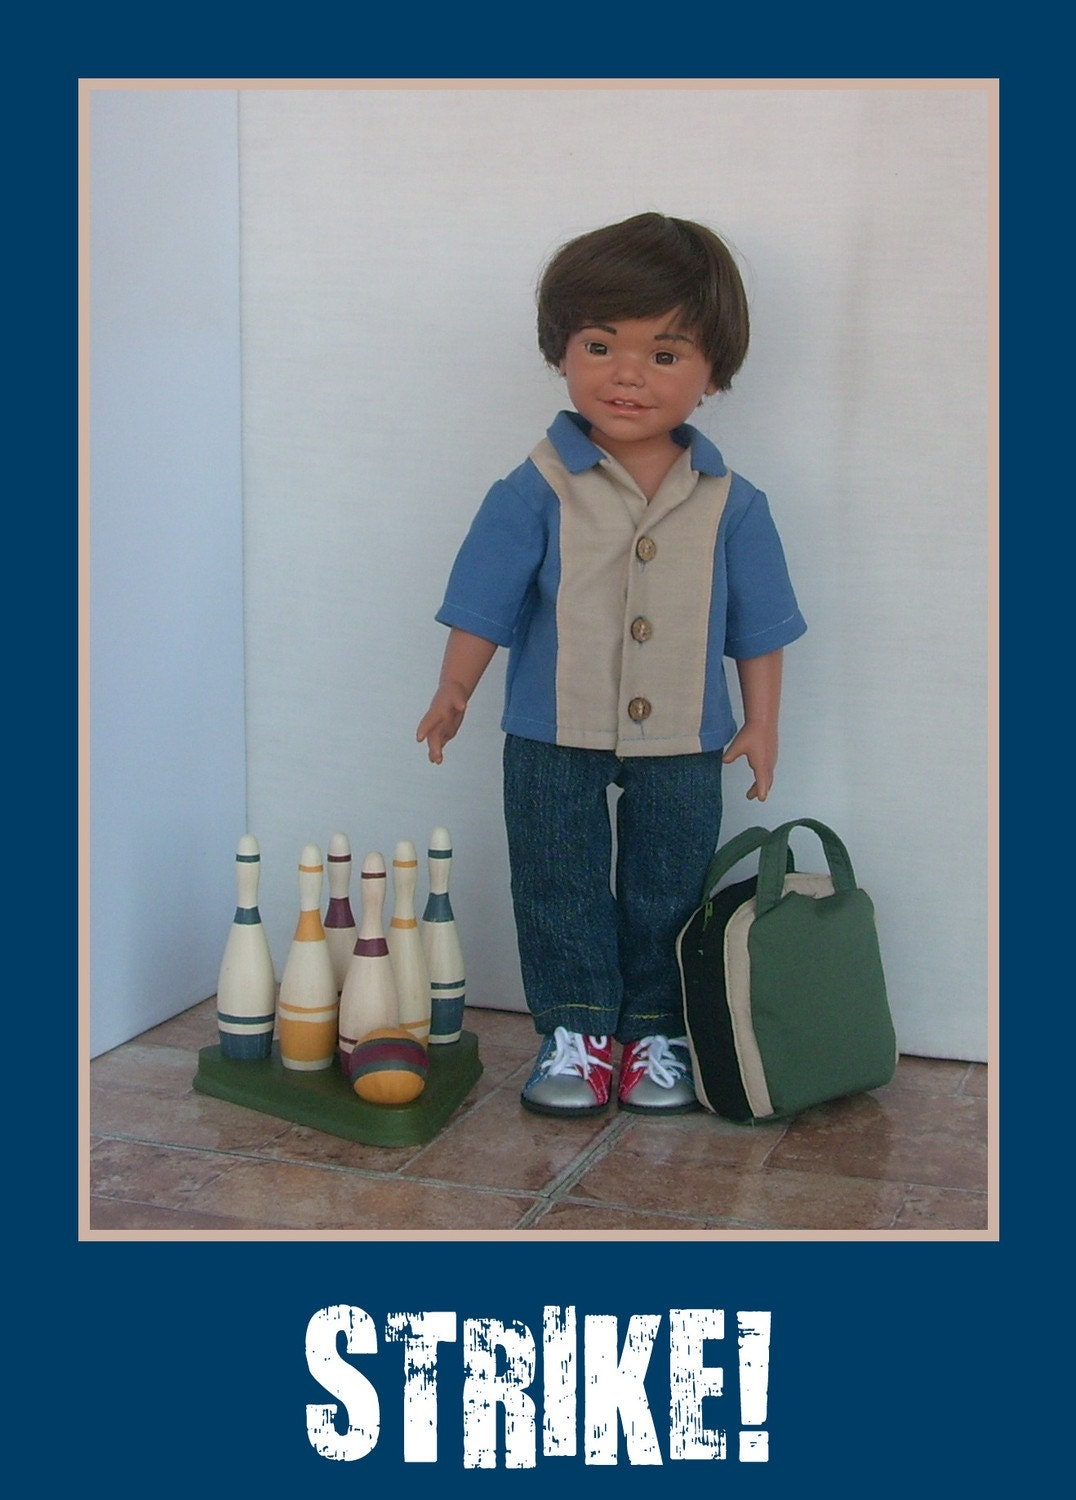 bowling outfit 18 inch doll clothes for carpatina magic